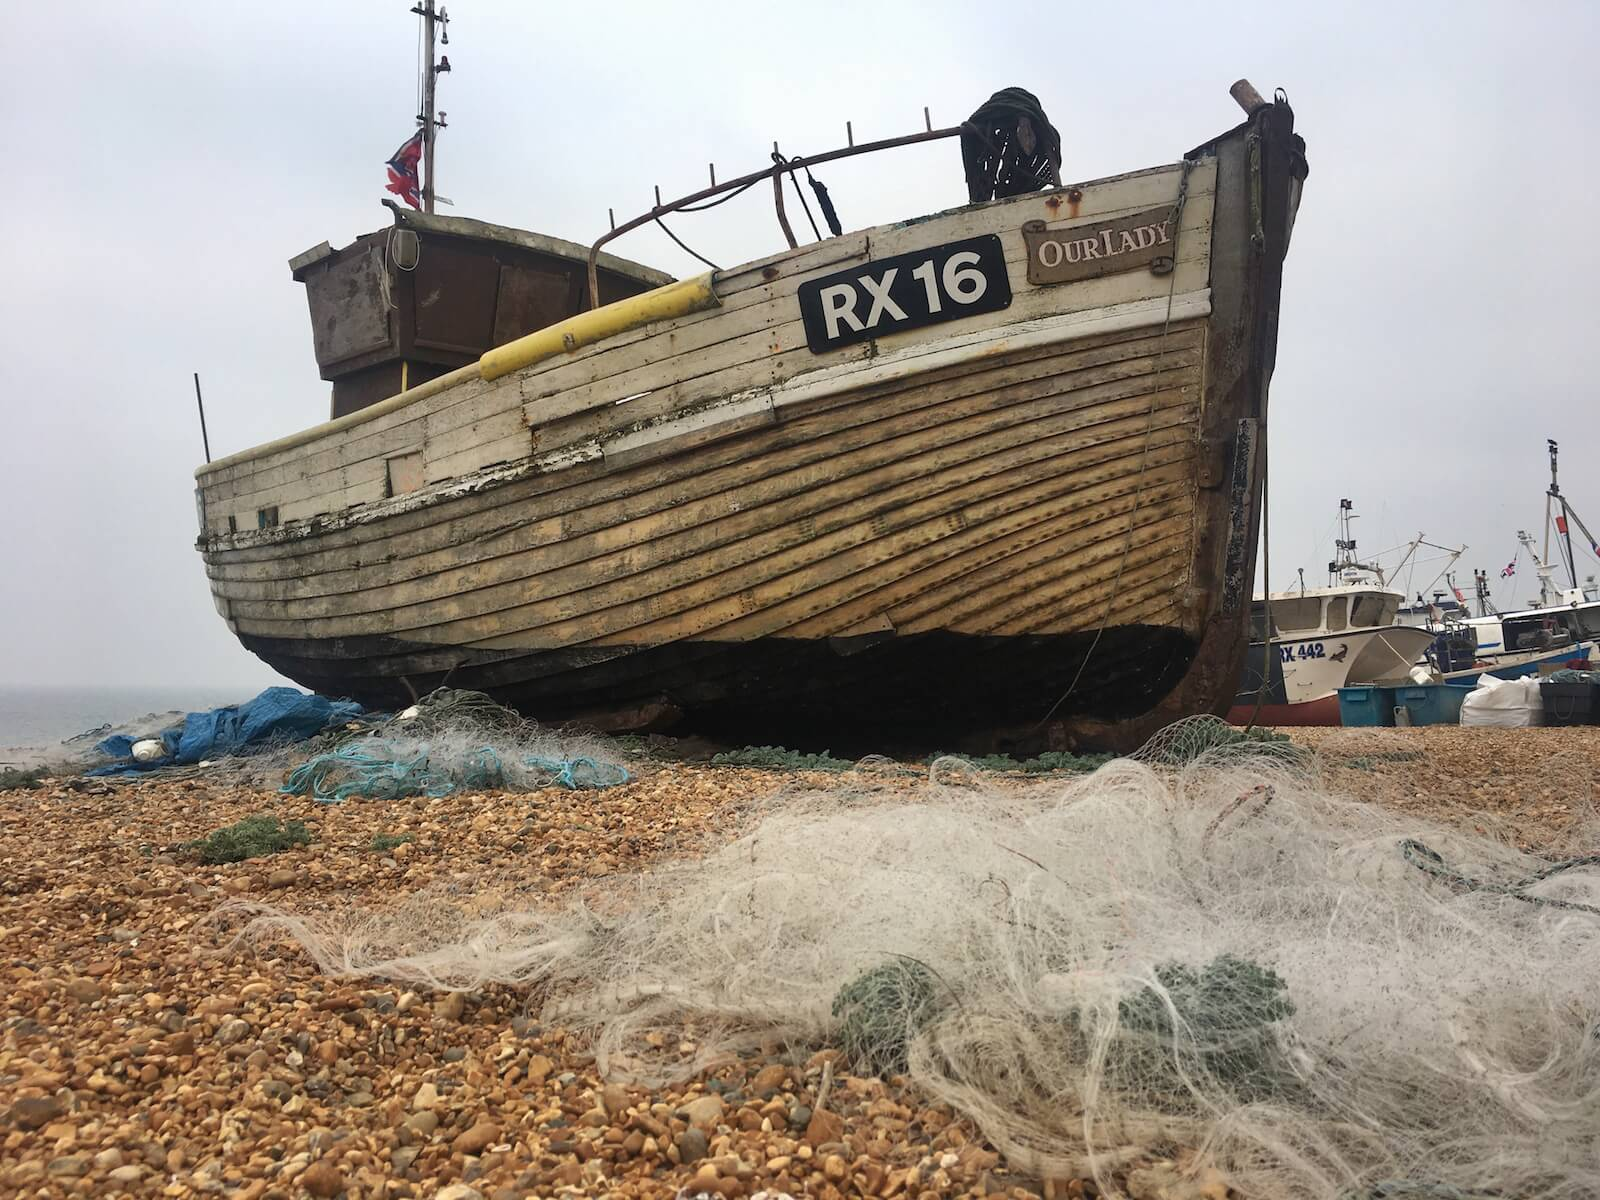 fischerboot hastings england